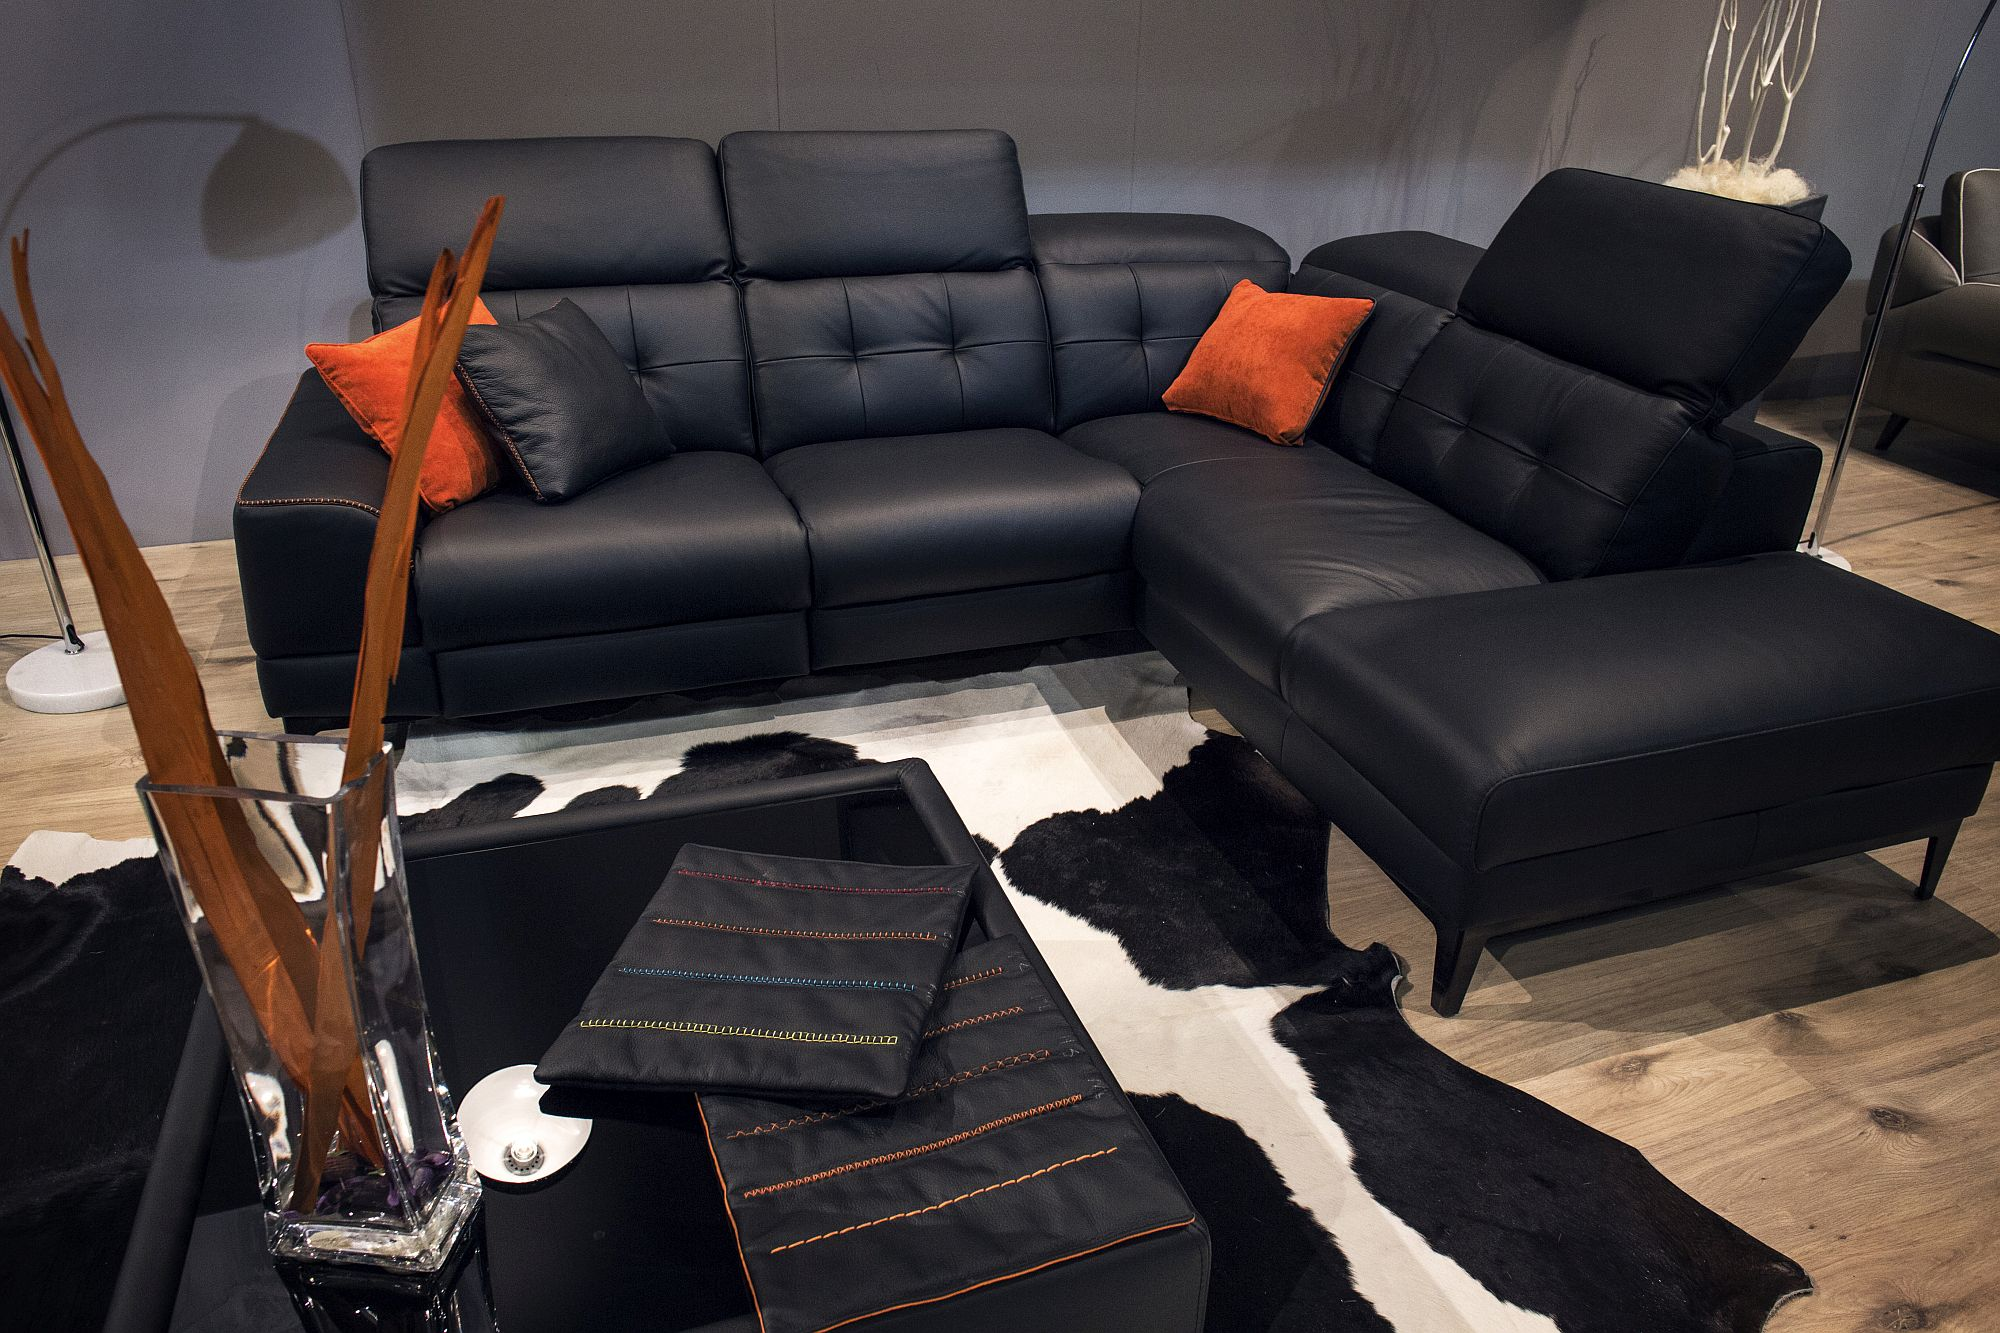 Combine orange and black with style in the living space!